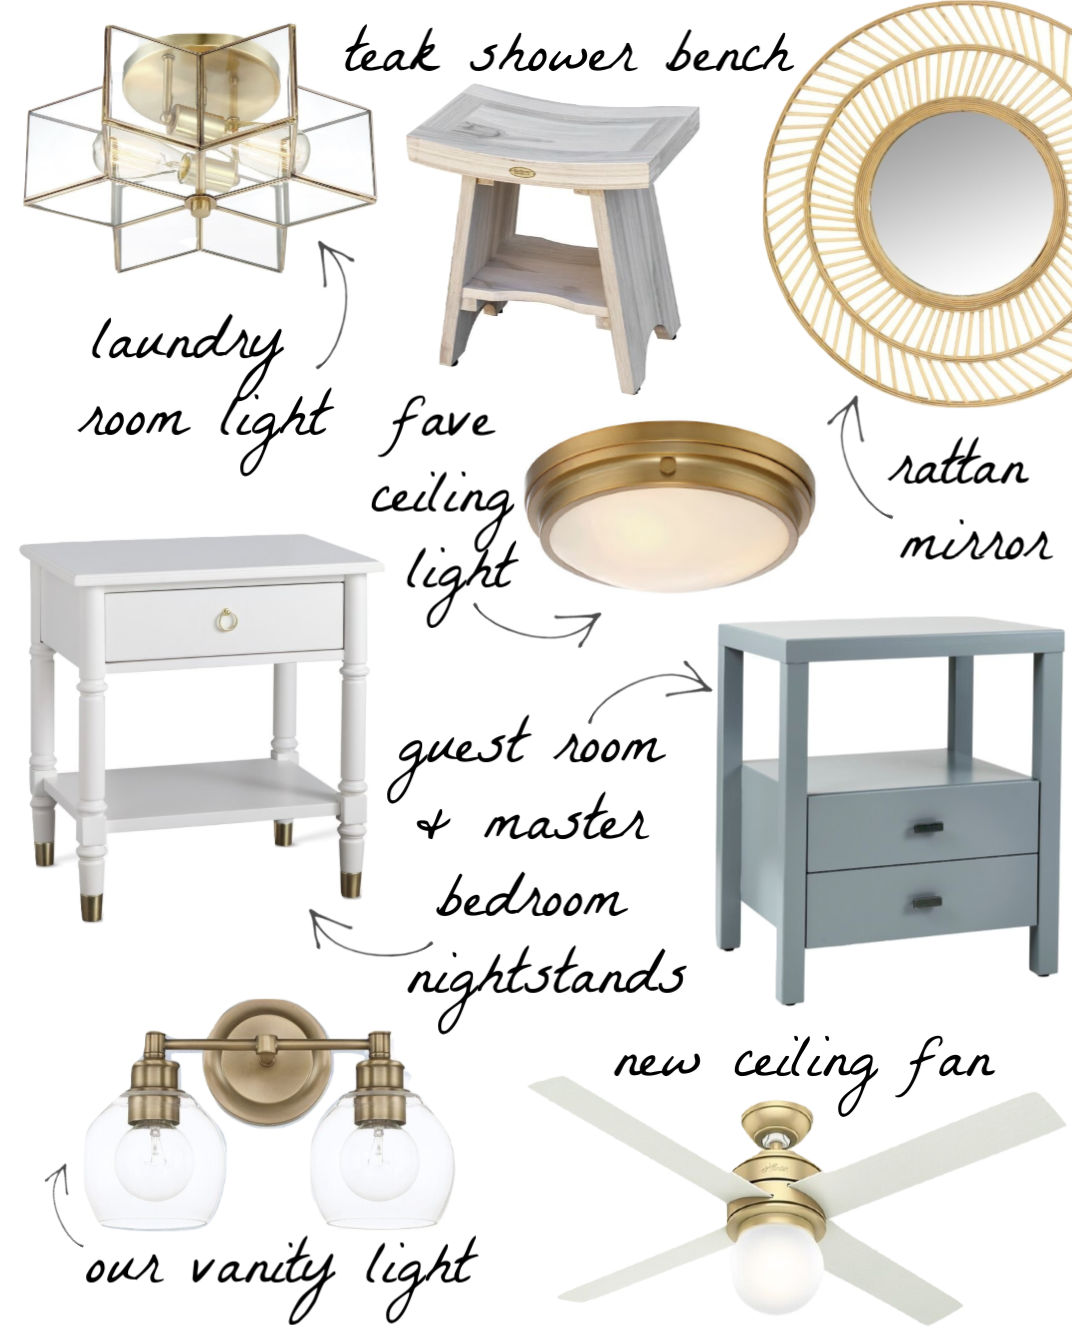 Some of my favorite furniture and accessories in our home!